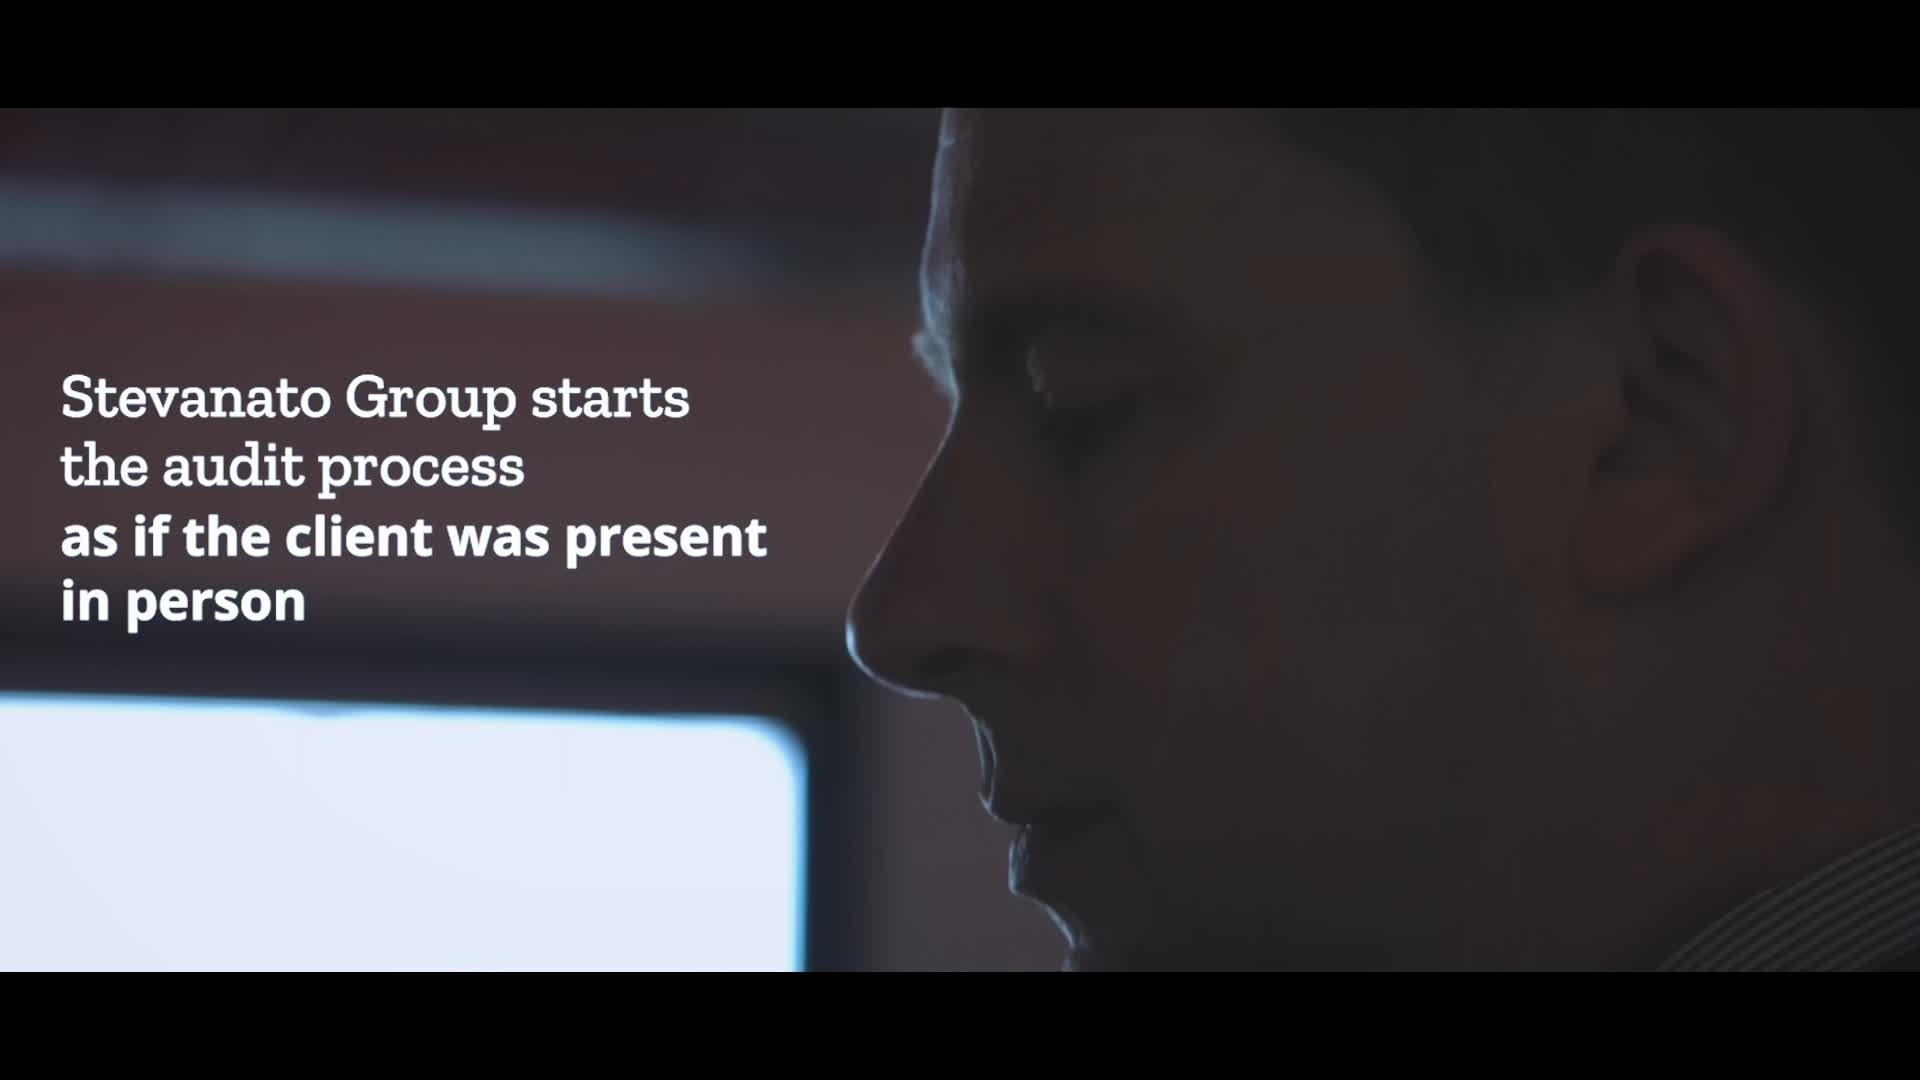 Stevanato Group - Video Audit